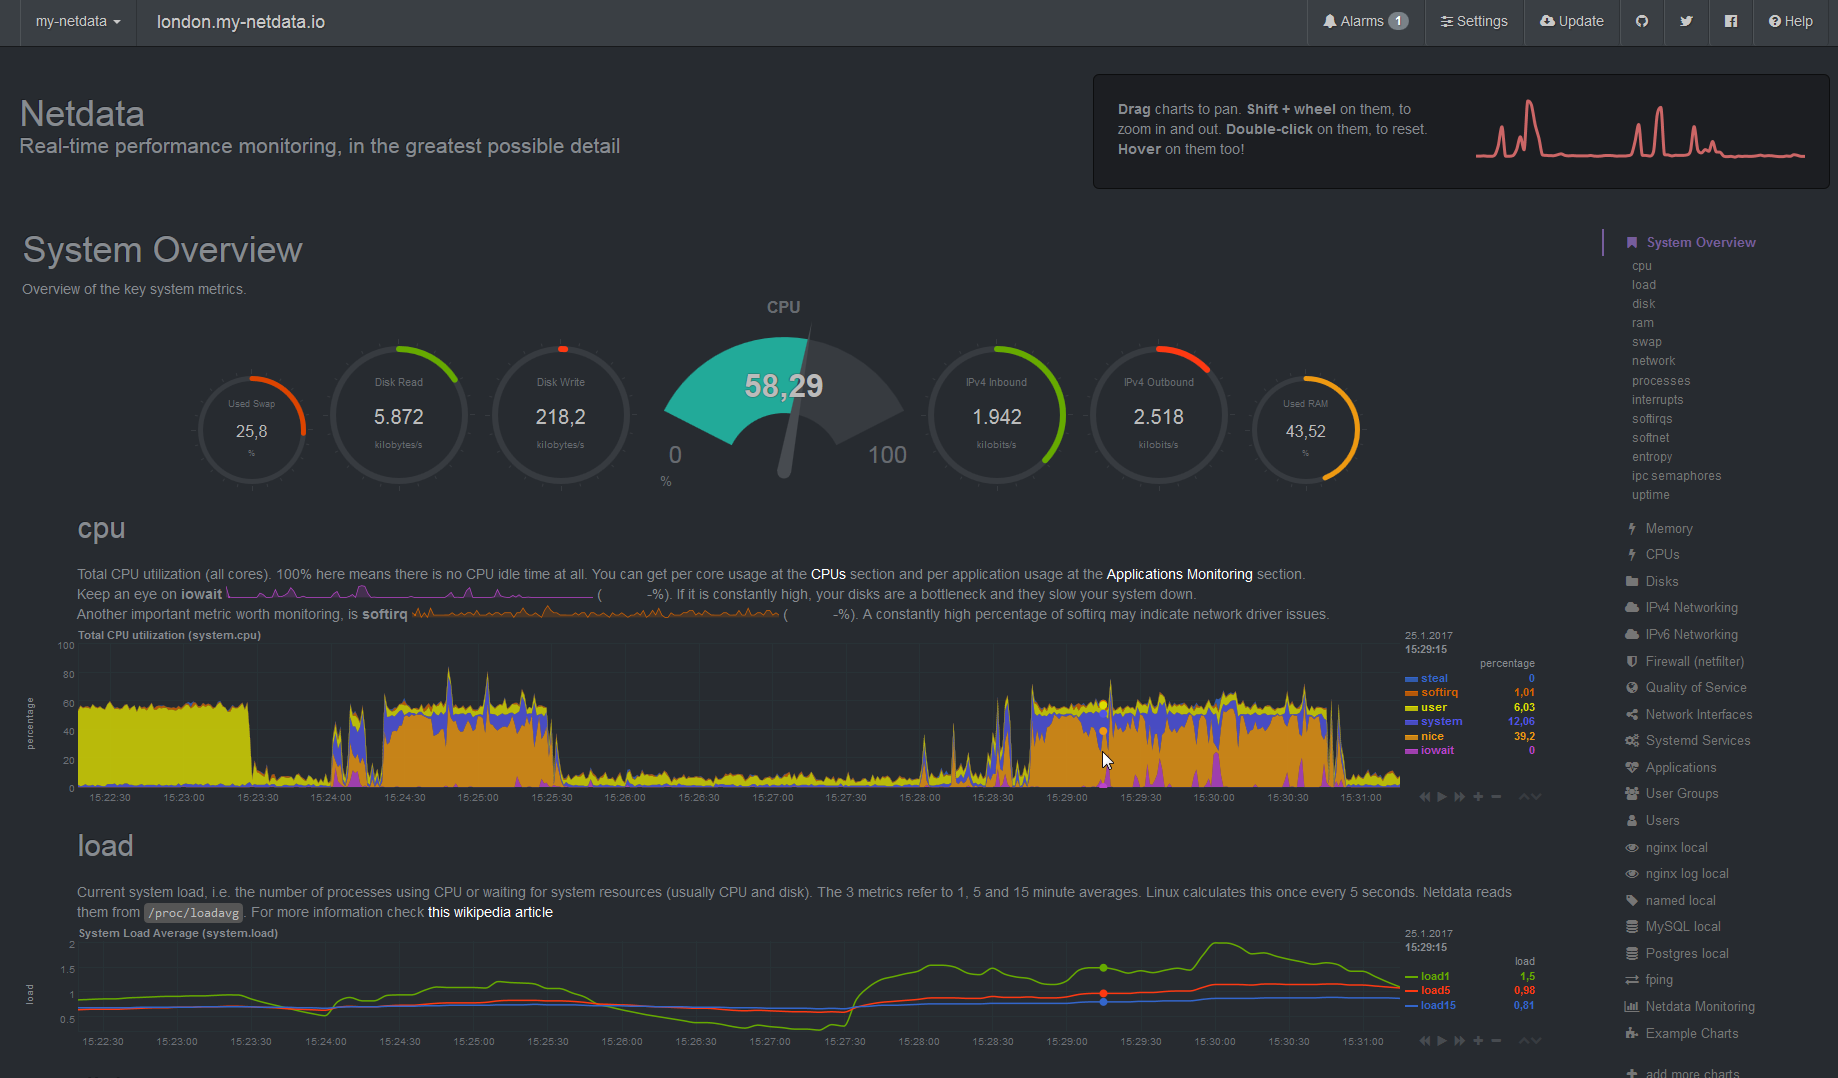 Monitoring Omnia with NetData - SW tweaks - Turris forum